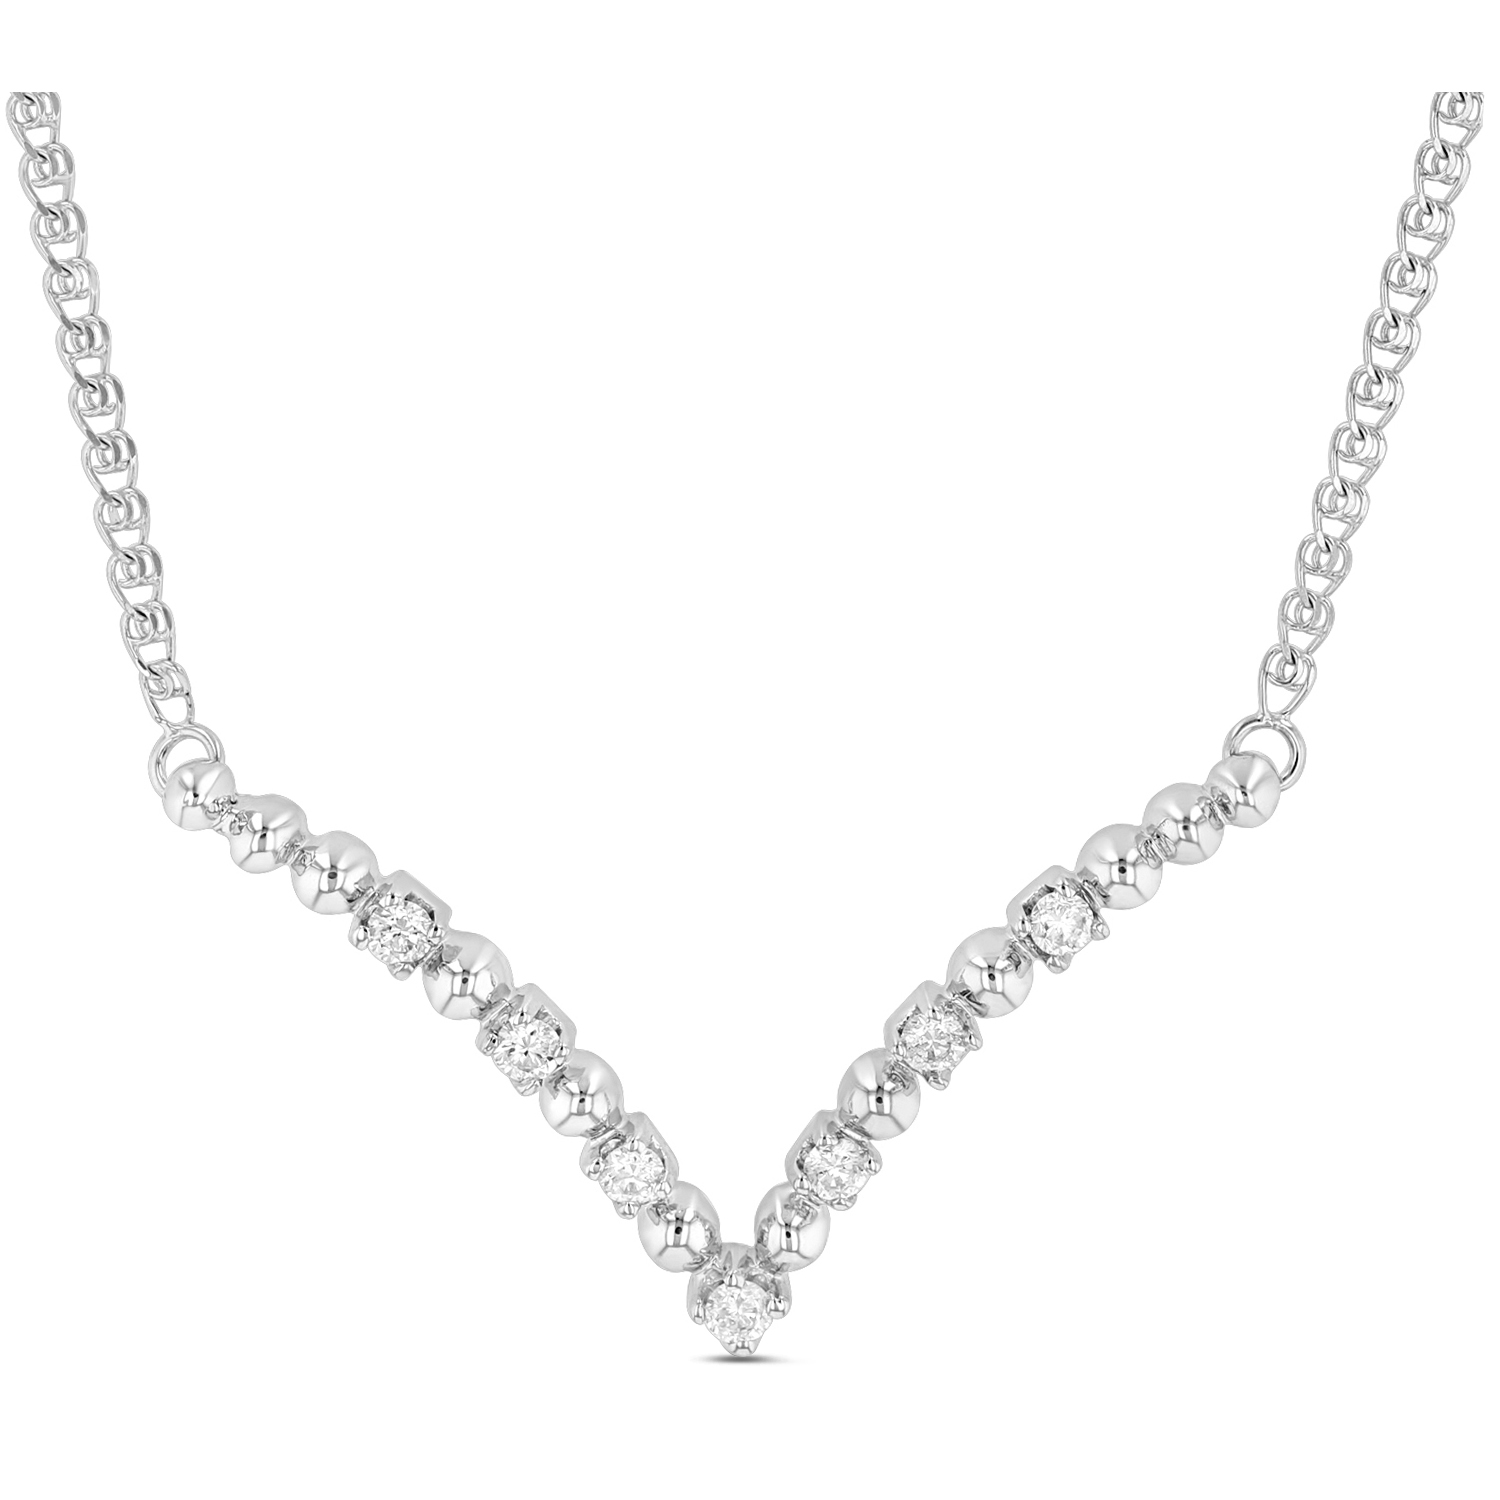 View 0.21ctw Diamond V Shaped Necklace in 14k White Gold